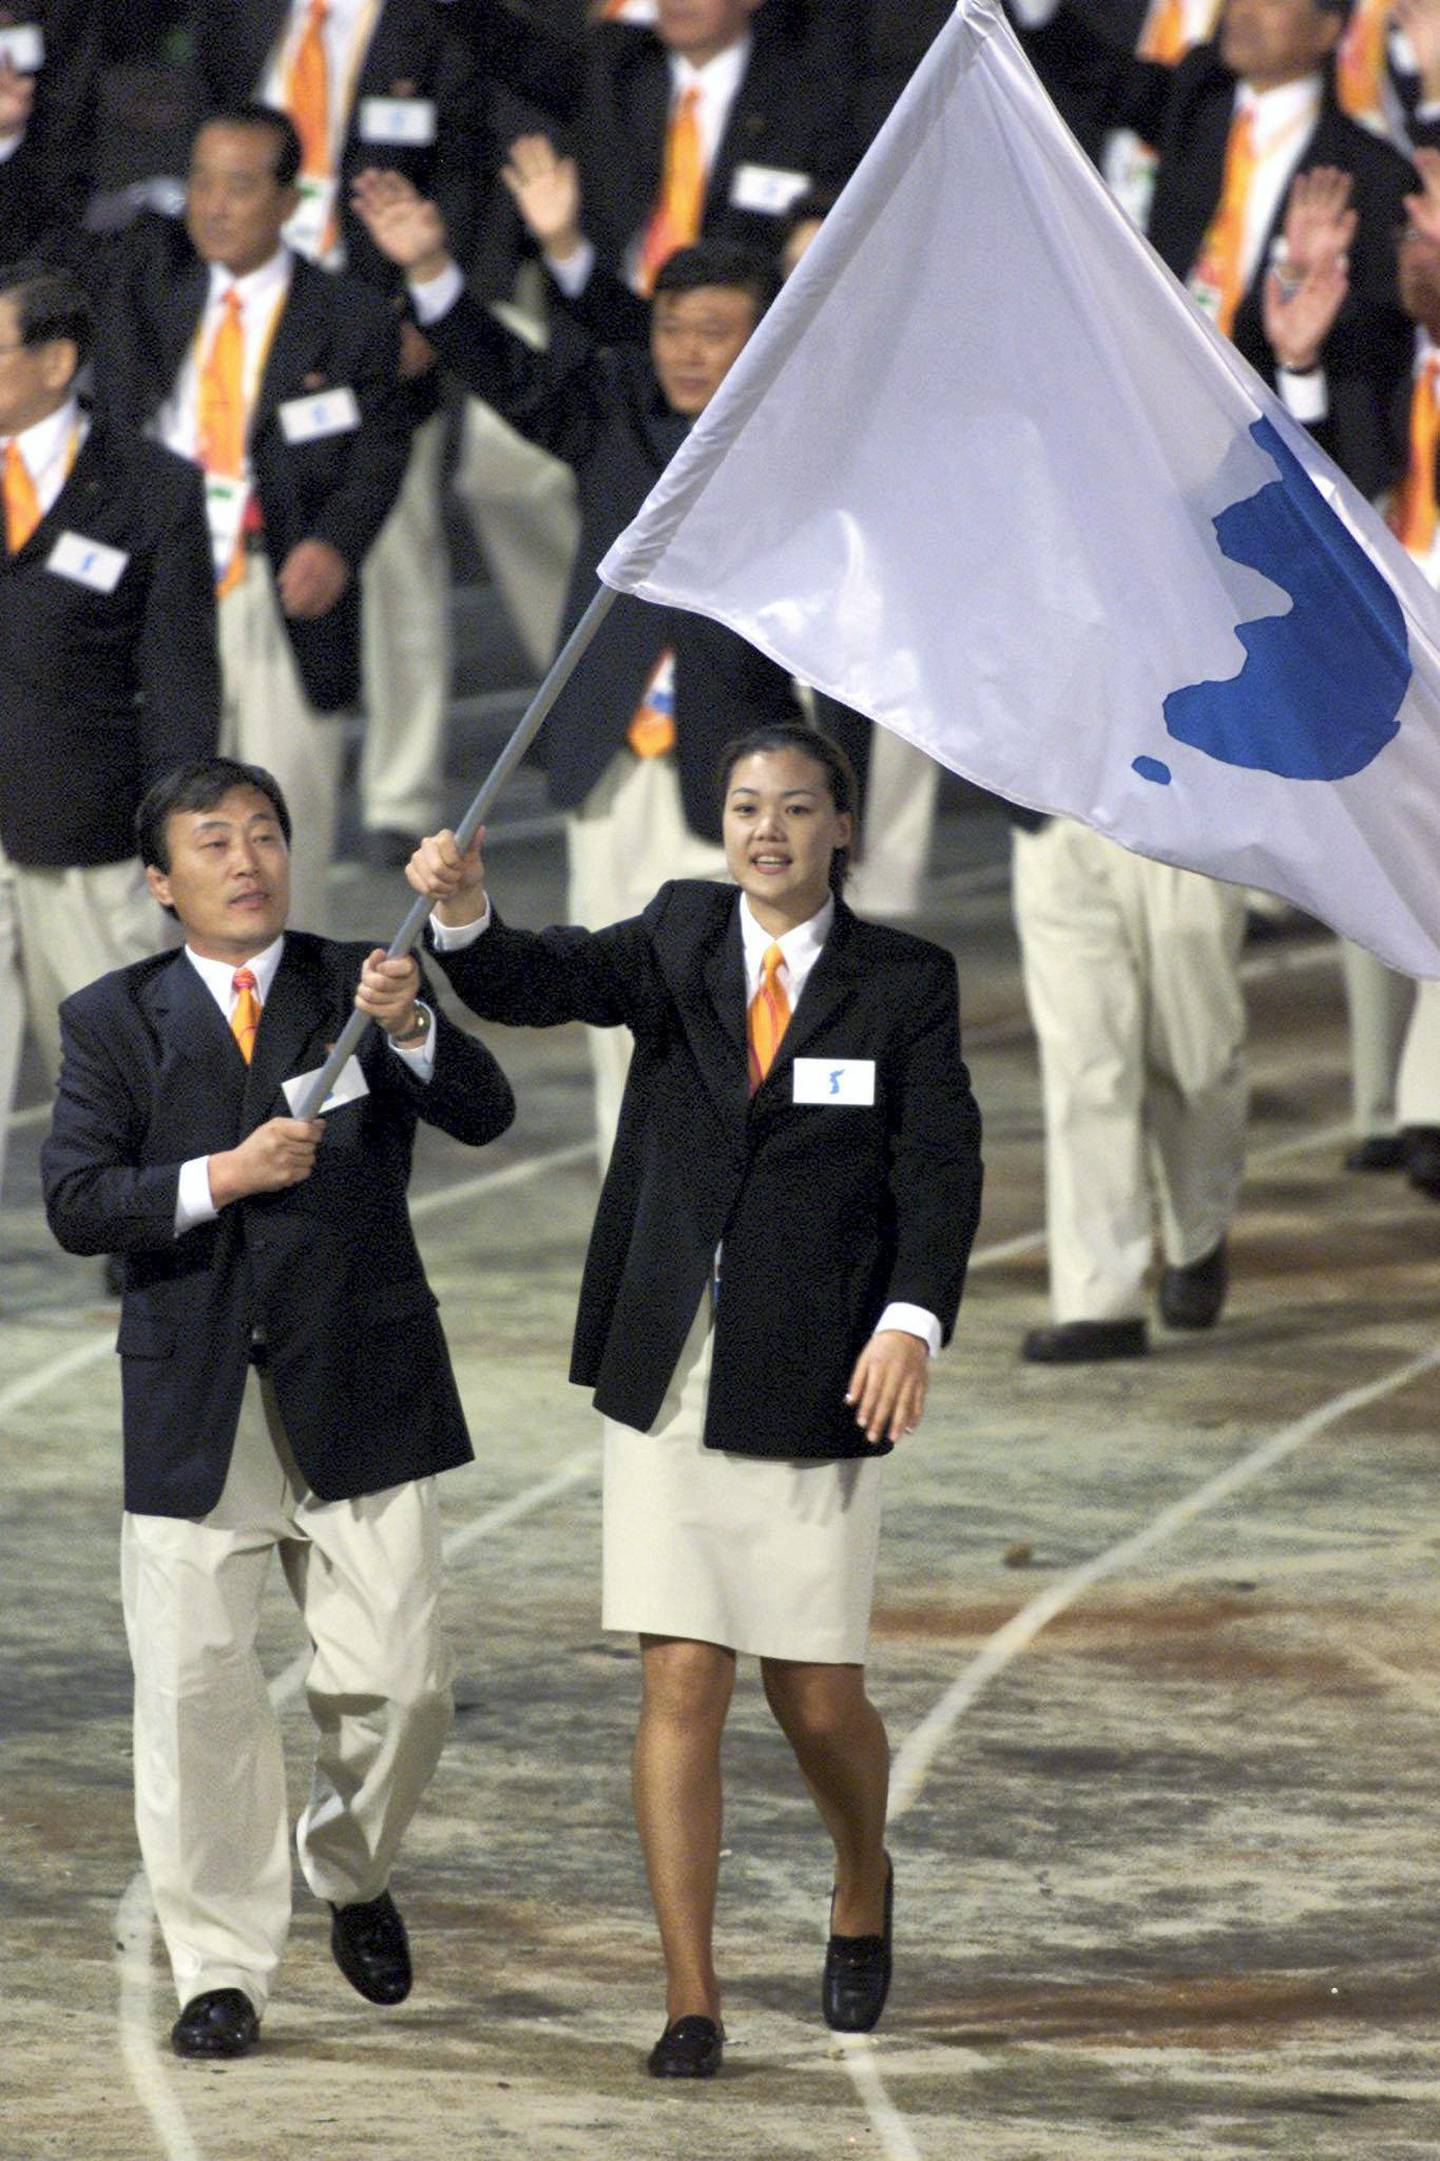 North Korea's Jang Choo Pak (L) and South Korea's Eun-Soon Chung carry a flag bearing the unification symbol of the Korean peninsula during the opening ceremony of the Sydney 2000 Olympic Games, September 15, 2000. Athletes from 199 nations are participating in the XXVII Olympic Games which will continue until October 1.  PB/HB - RP2DRIBPJIAA